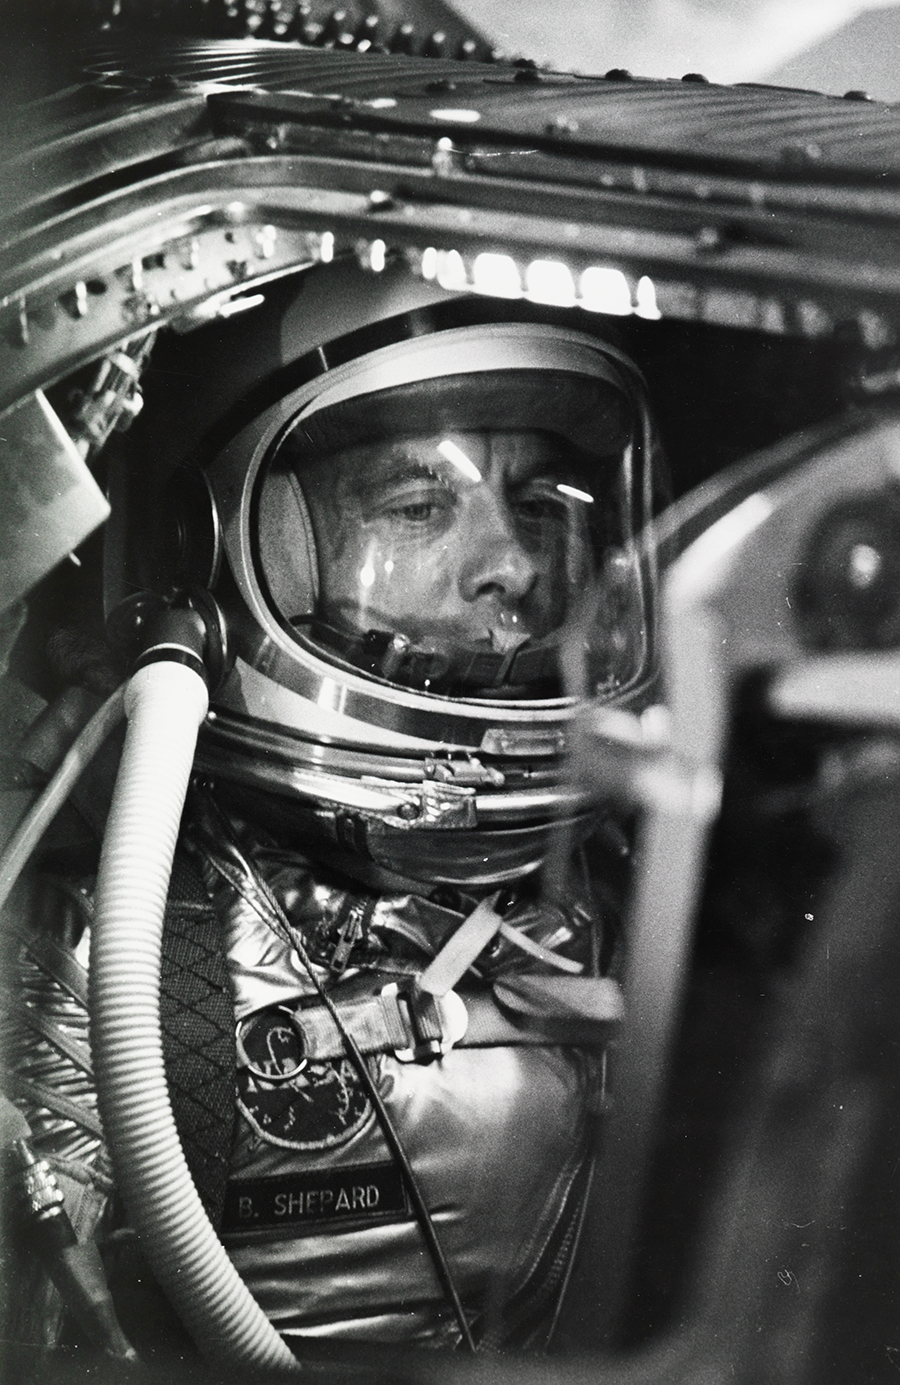 Alan Shepard waits to become the first American in space, Cape Canaveral, 1961.  PHOTOGRAPH BY NASA